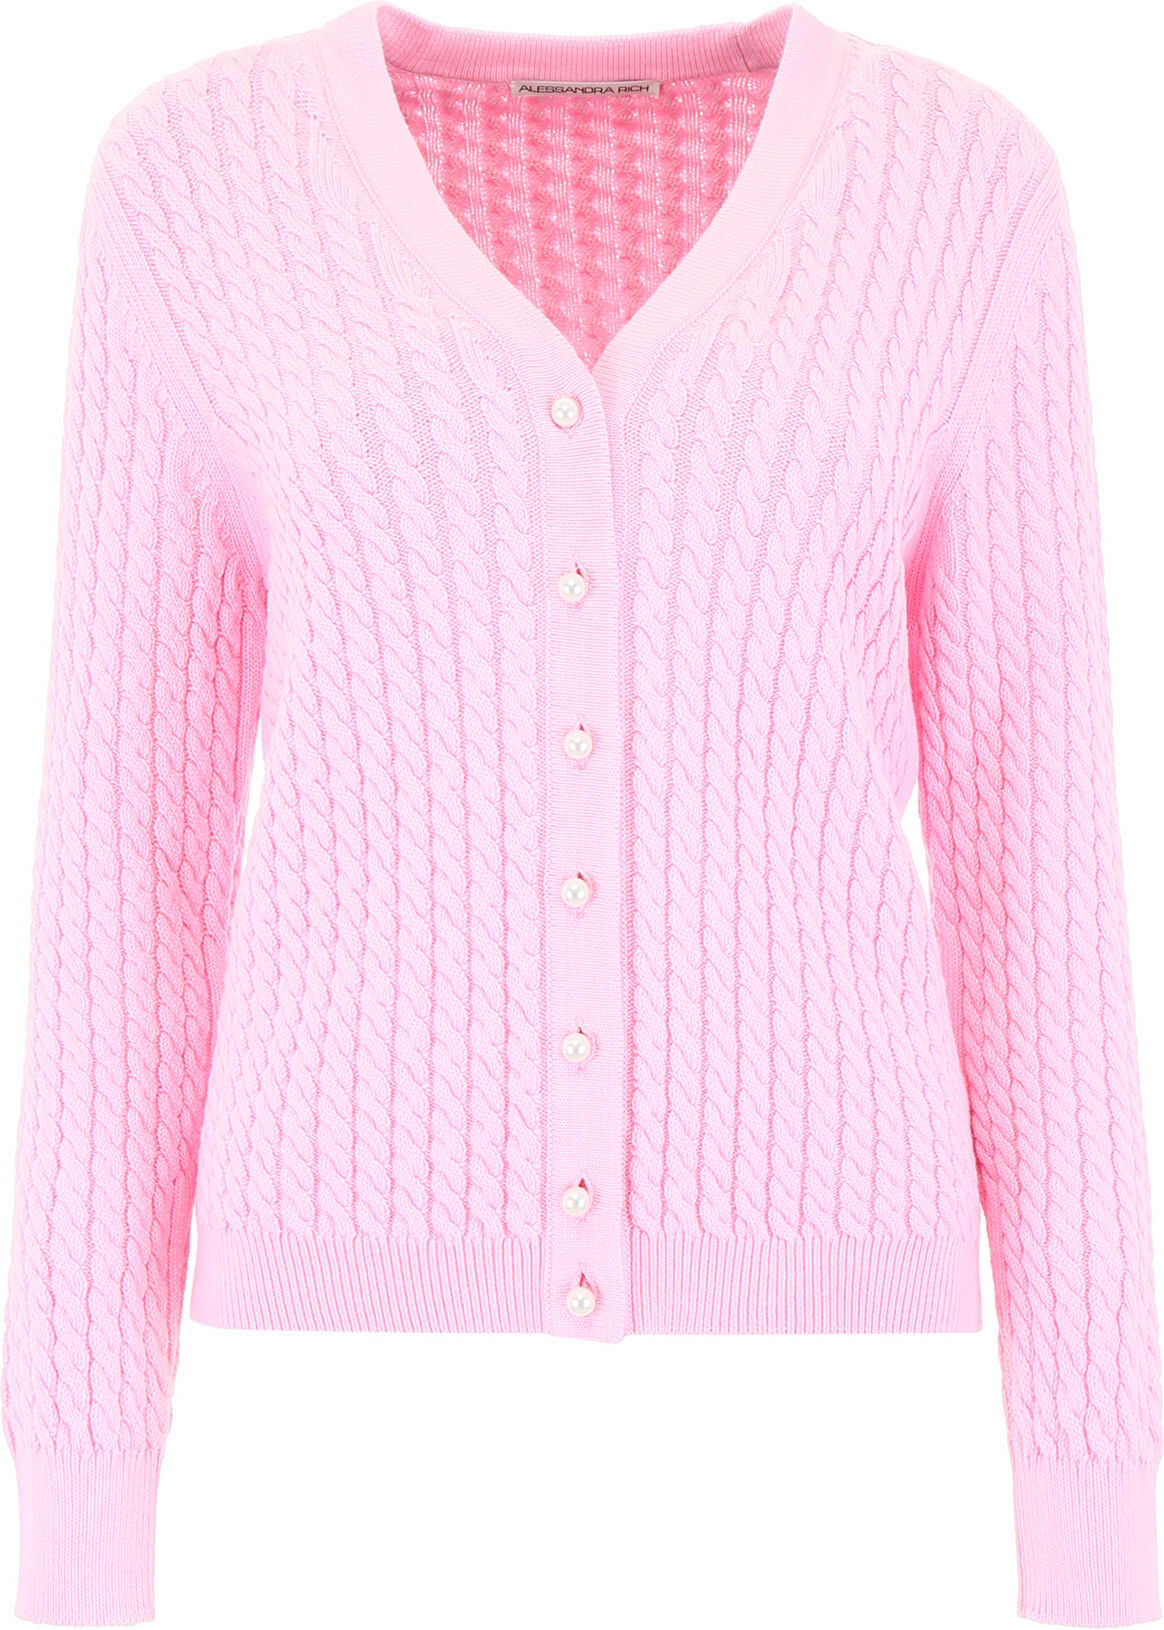 Alessandra Rich Cable Knit Cardigan PINK